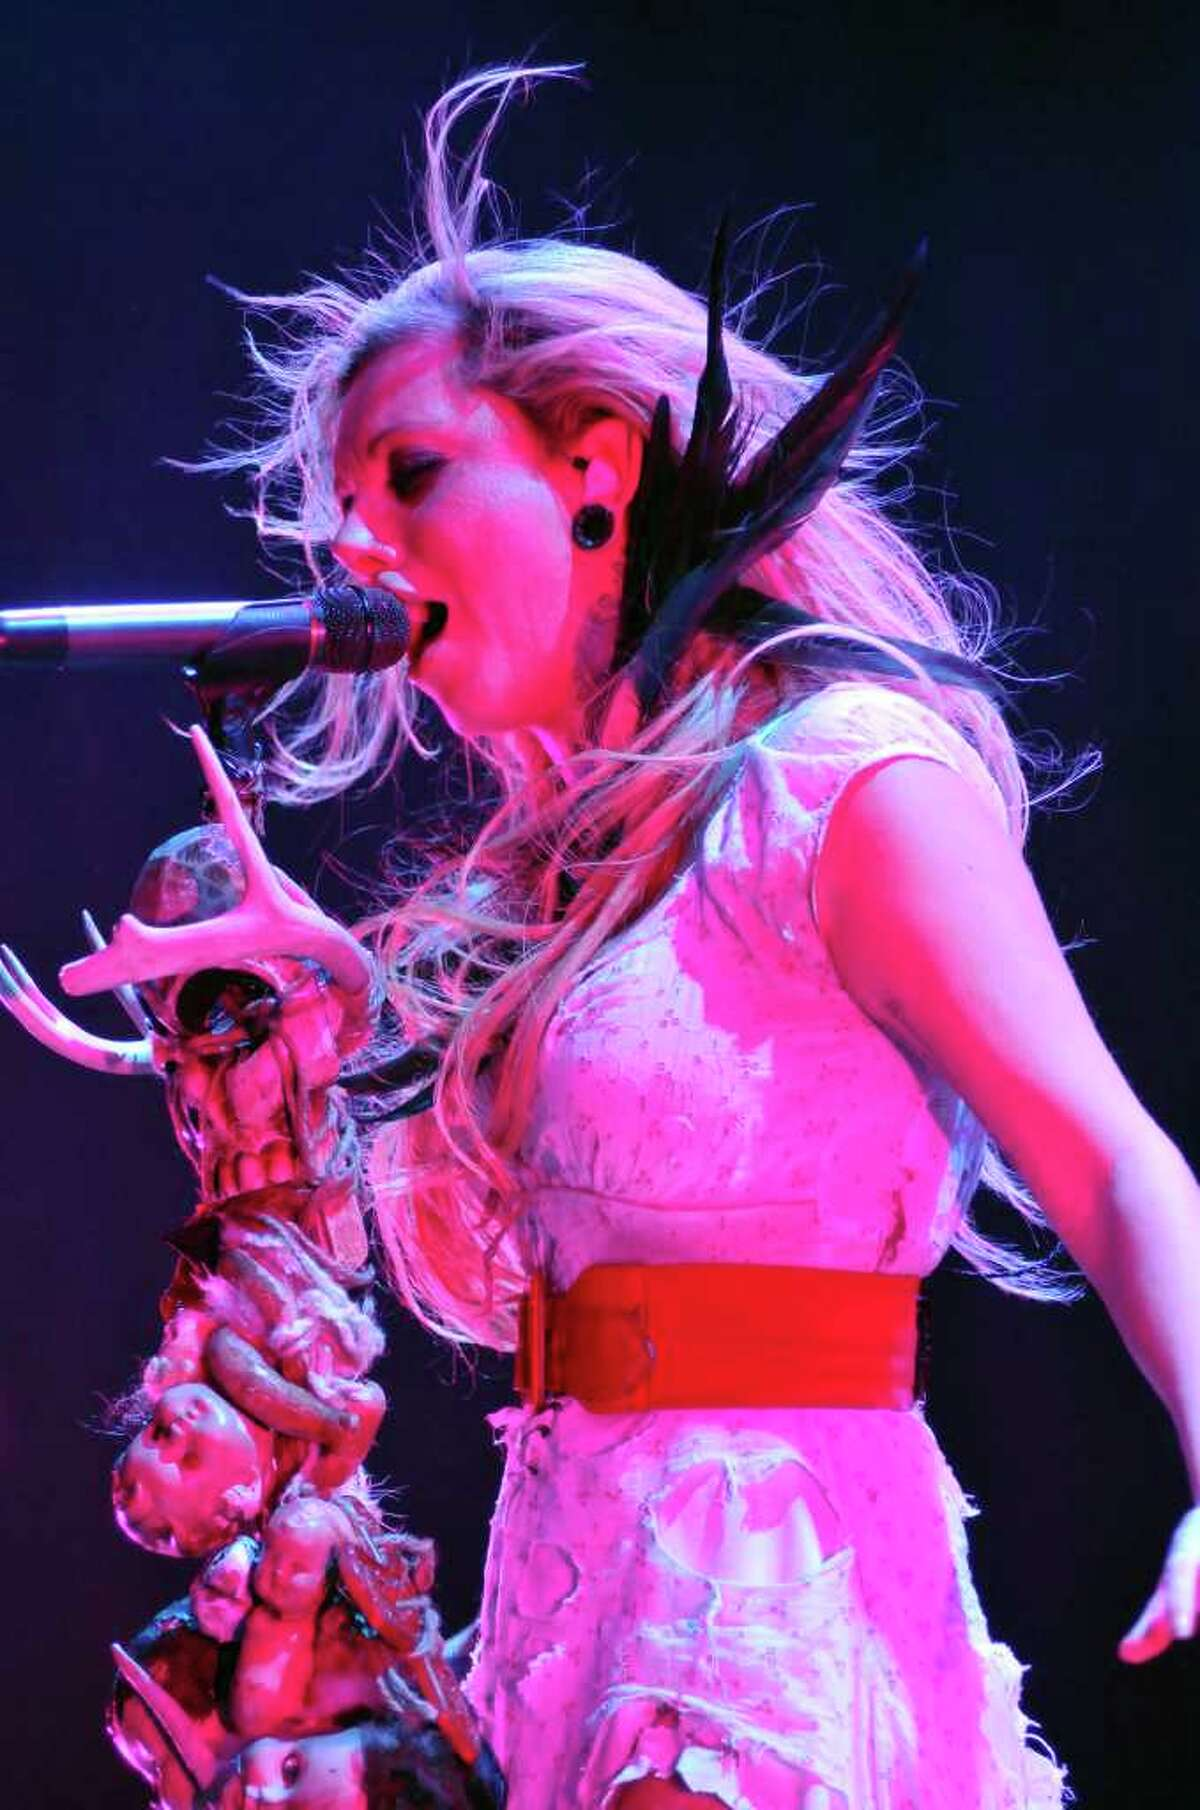 Maria Brink and In This Moment open the inaugural show at the Illusion Theatre configuration of the Alamodome on Wednesday, Feb. 9, 2011. Korn and Sevendust were also on the bill.